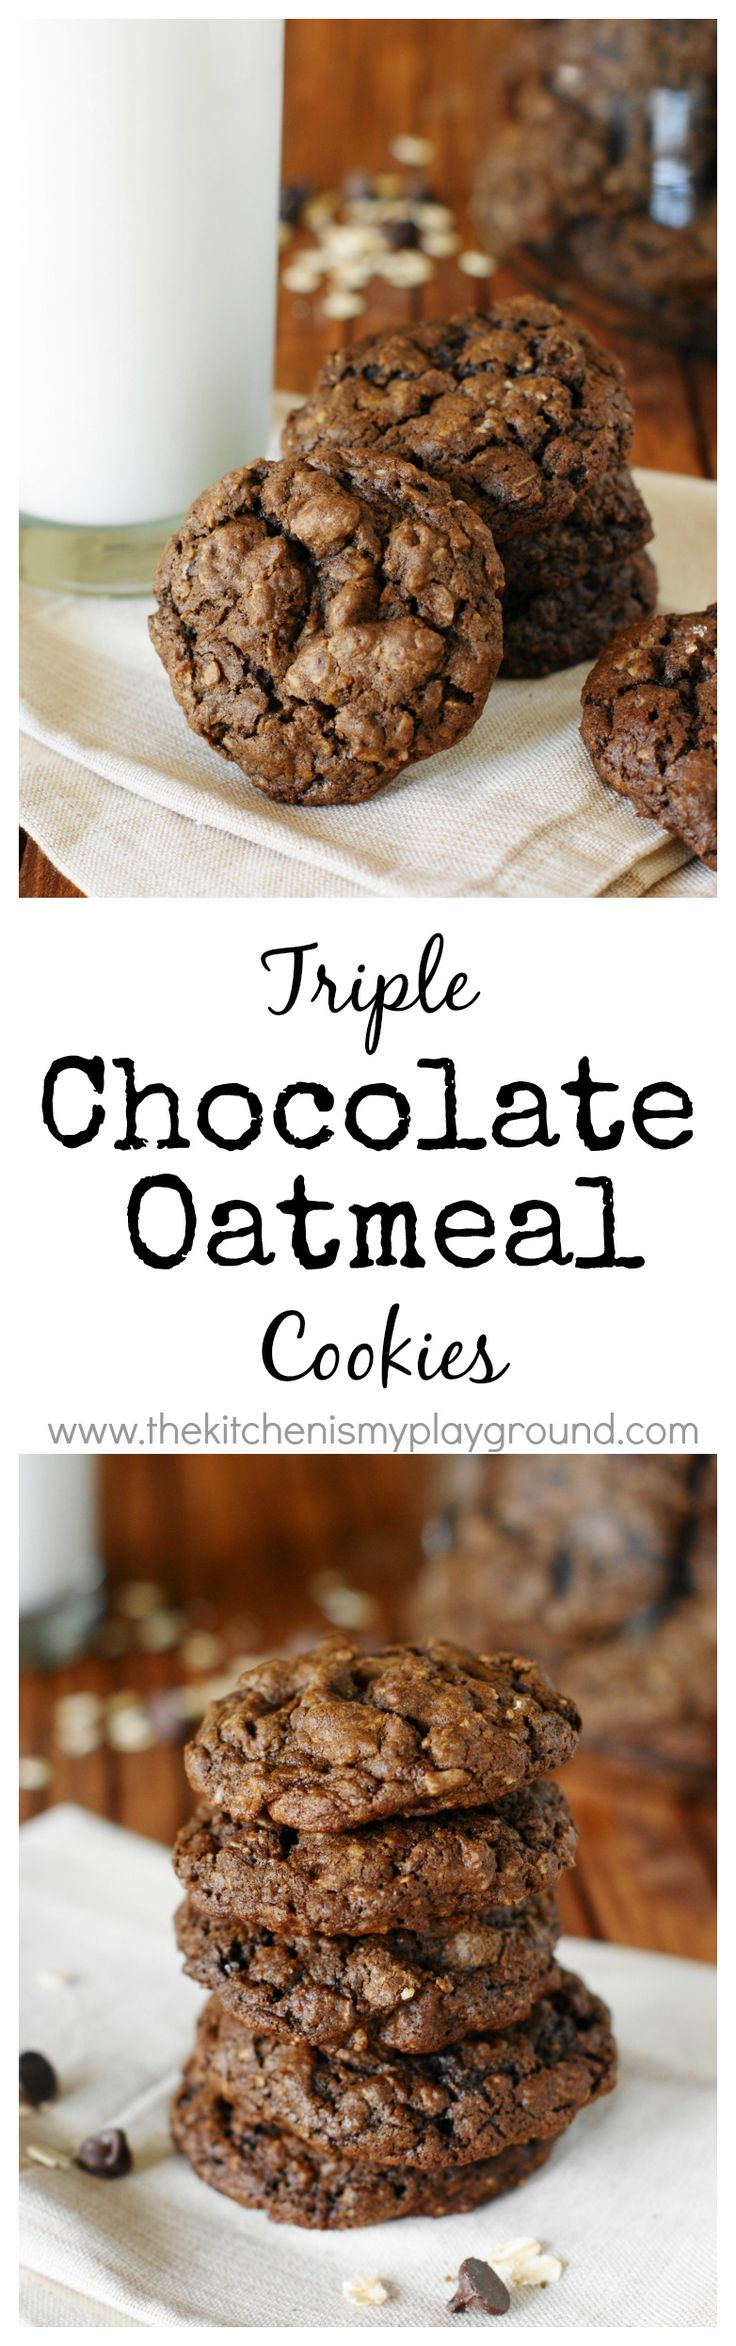 Triple Chocolate Oatmeal Cookies ~ a cookie favorite! www.thekitchenismyplayground.com